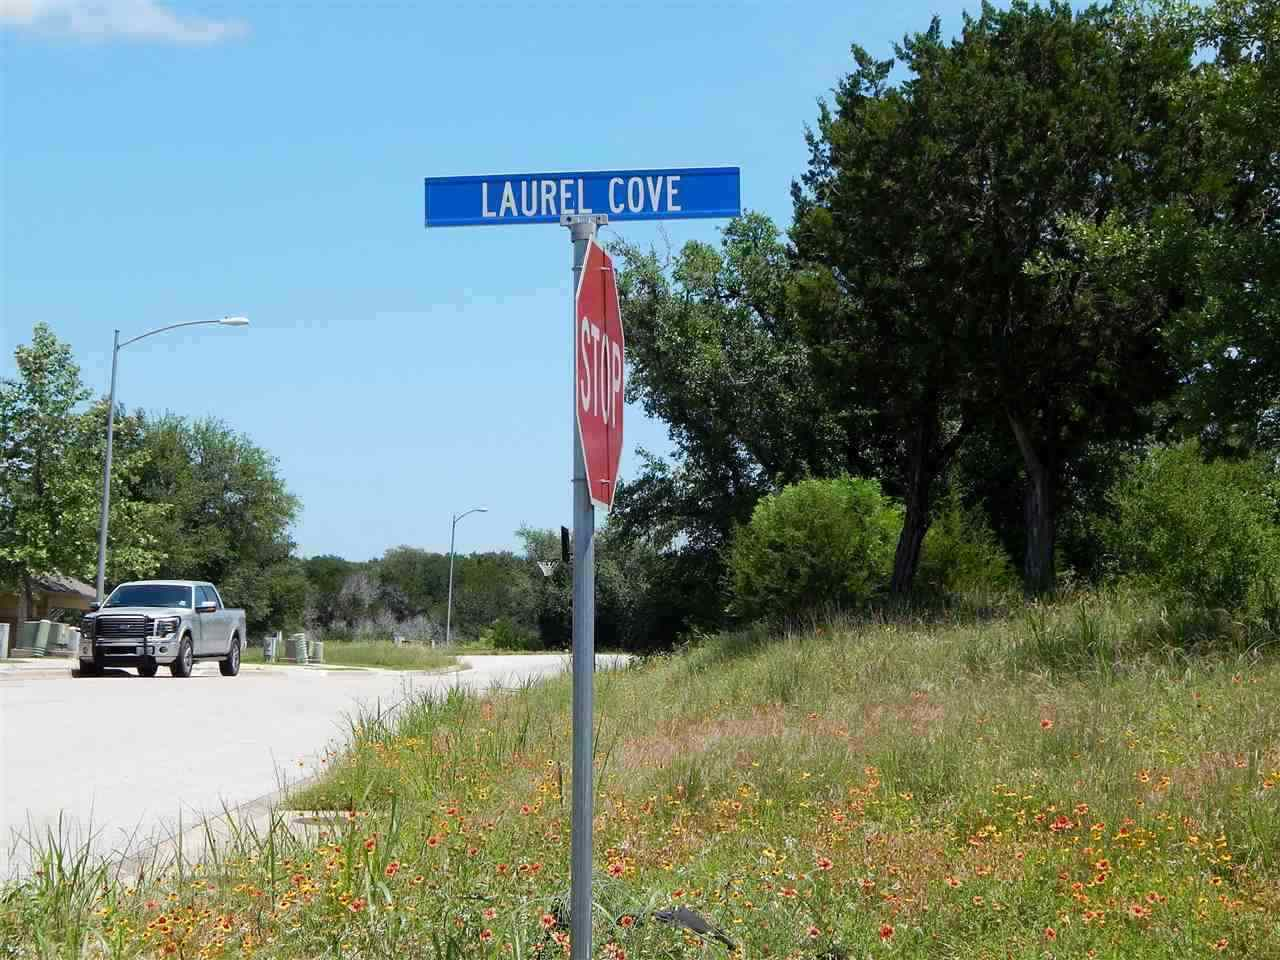 Land for Sale at 53 Laurel Cove Marble Falls, Texas 78654 United States